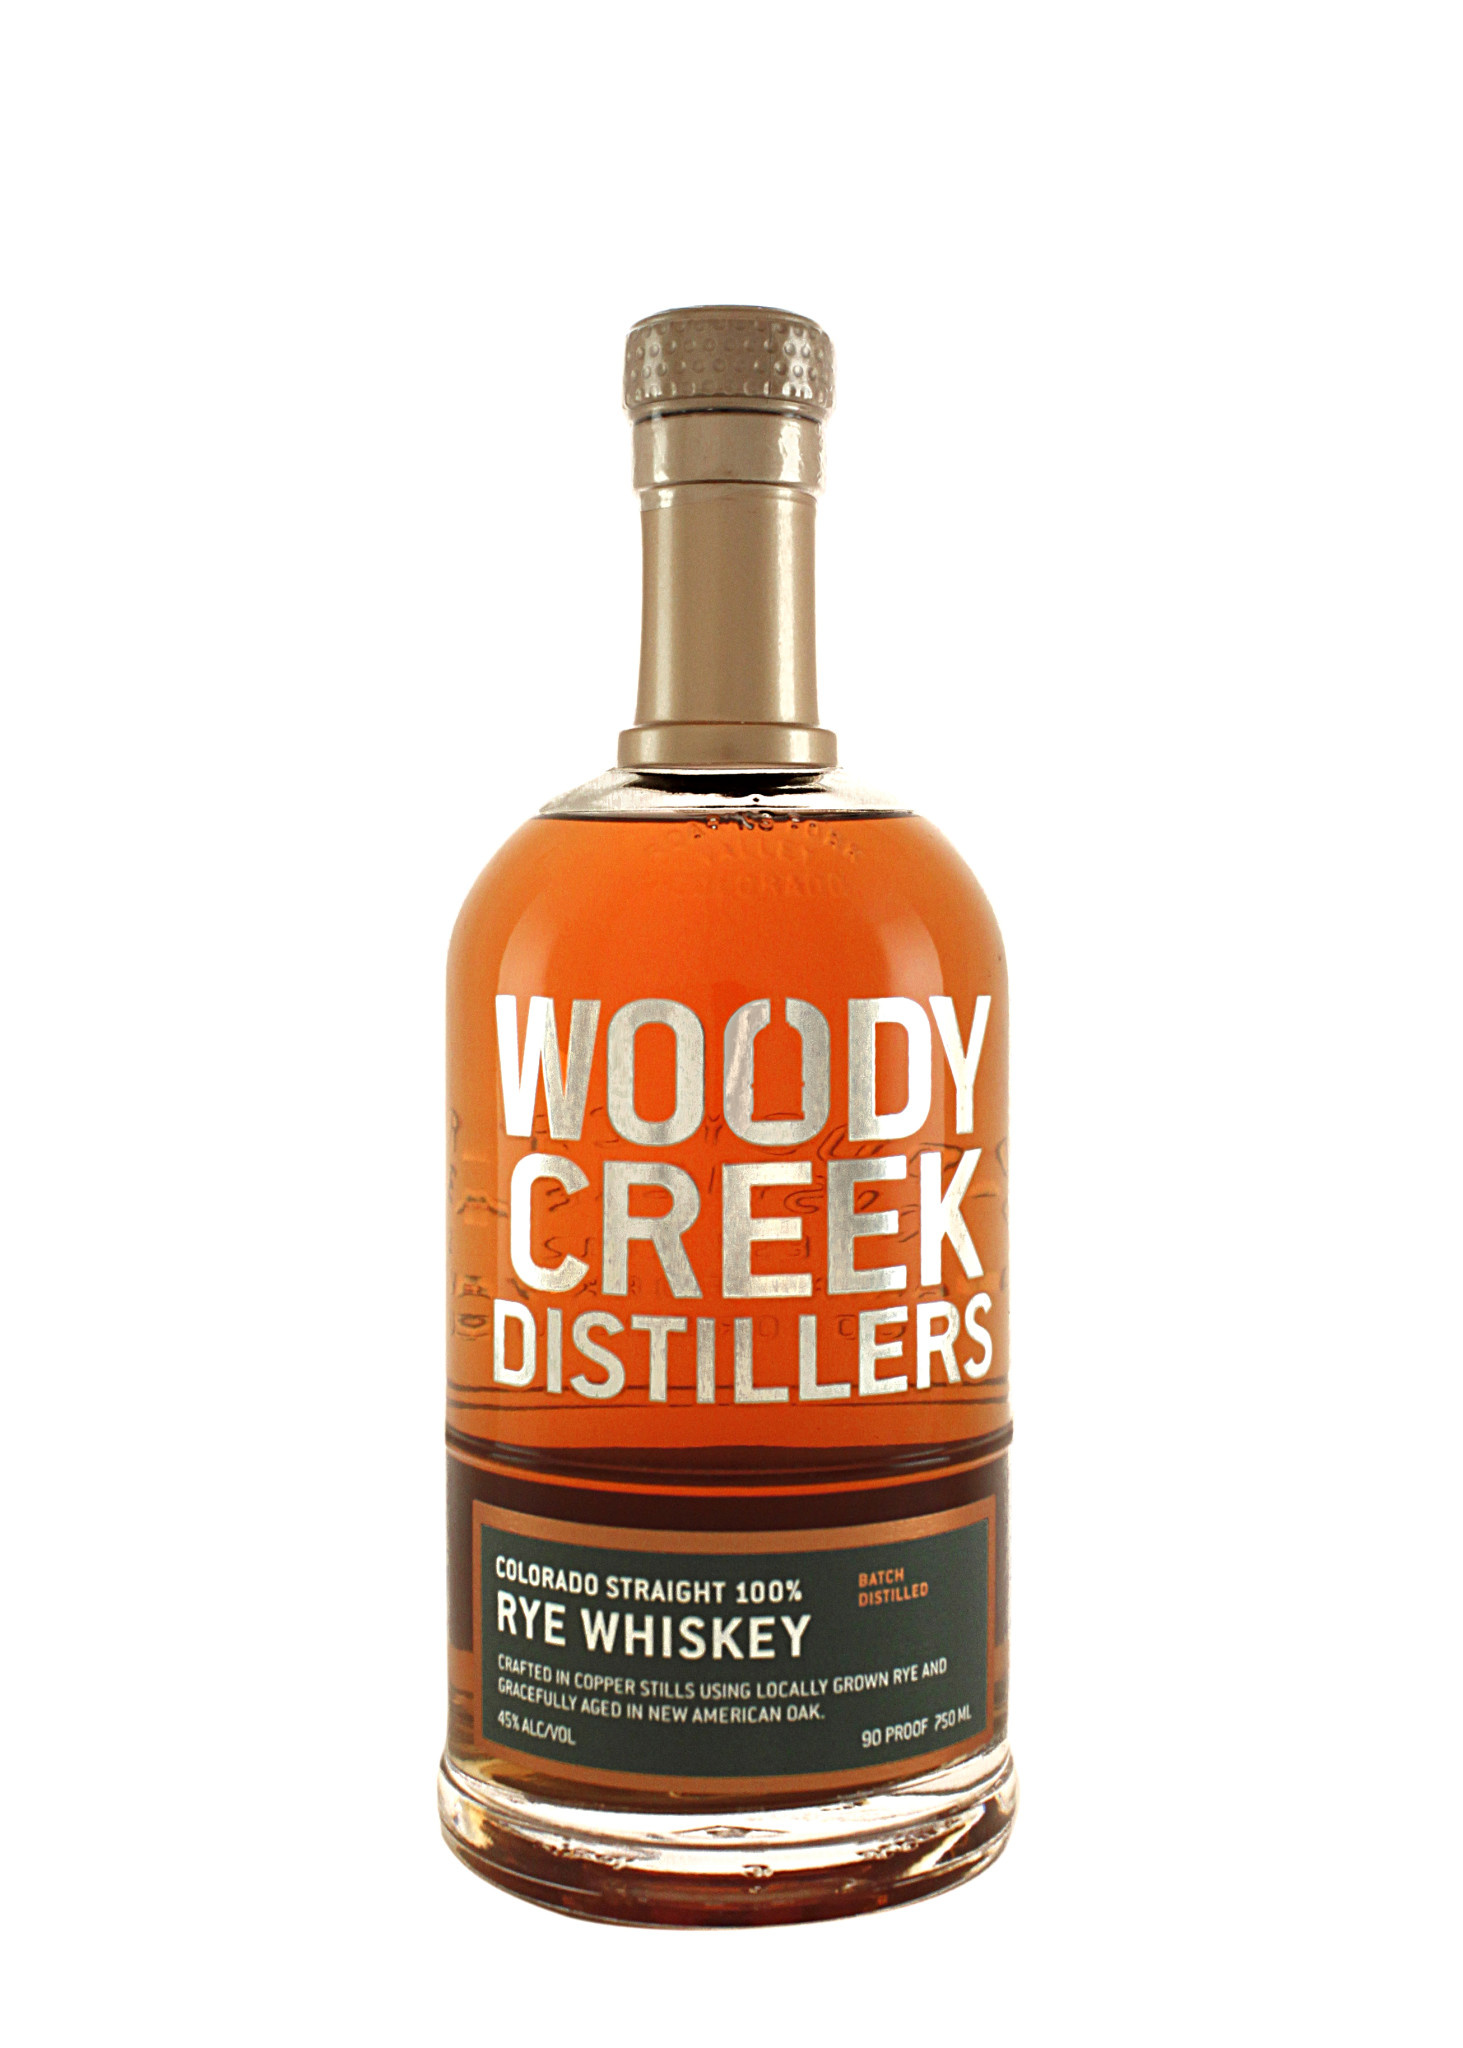 Woody Creek Straight Rye Whiskey, Colorado